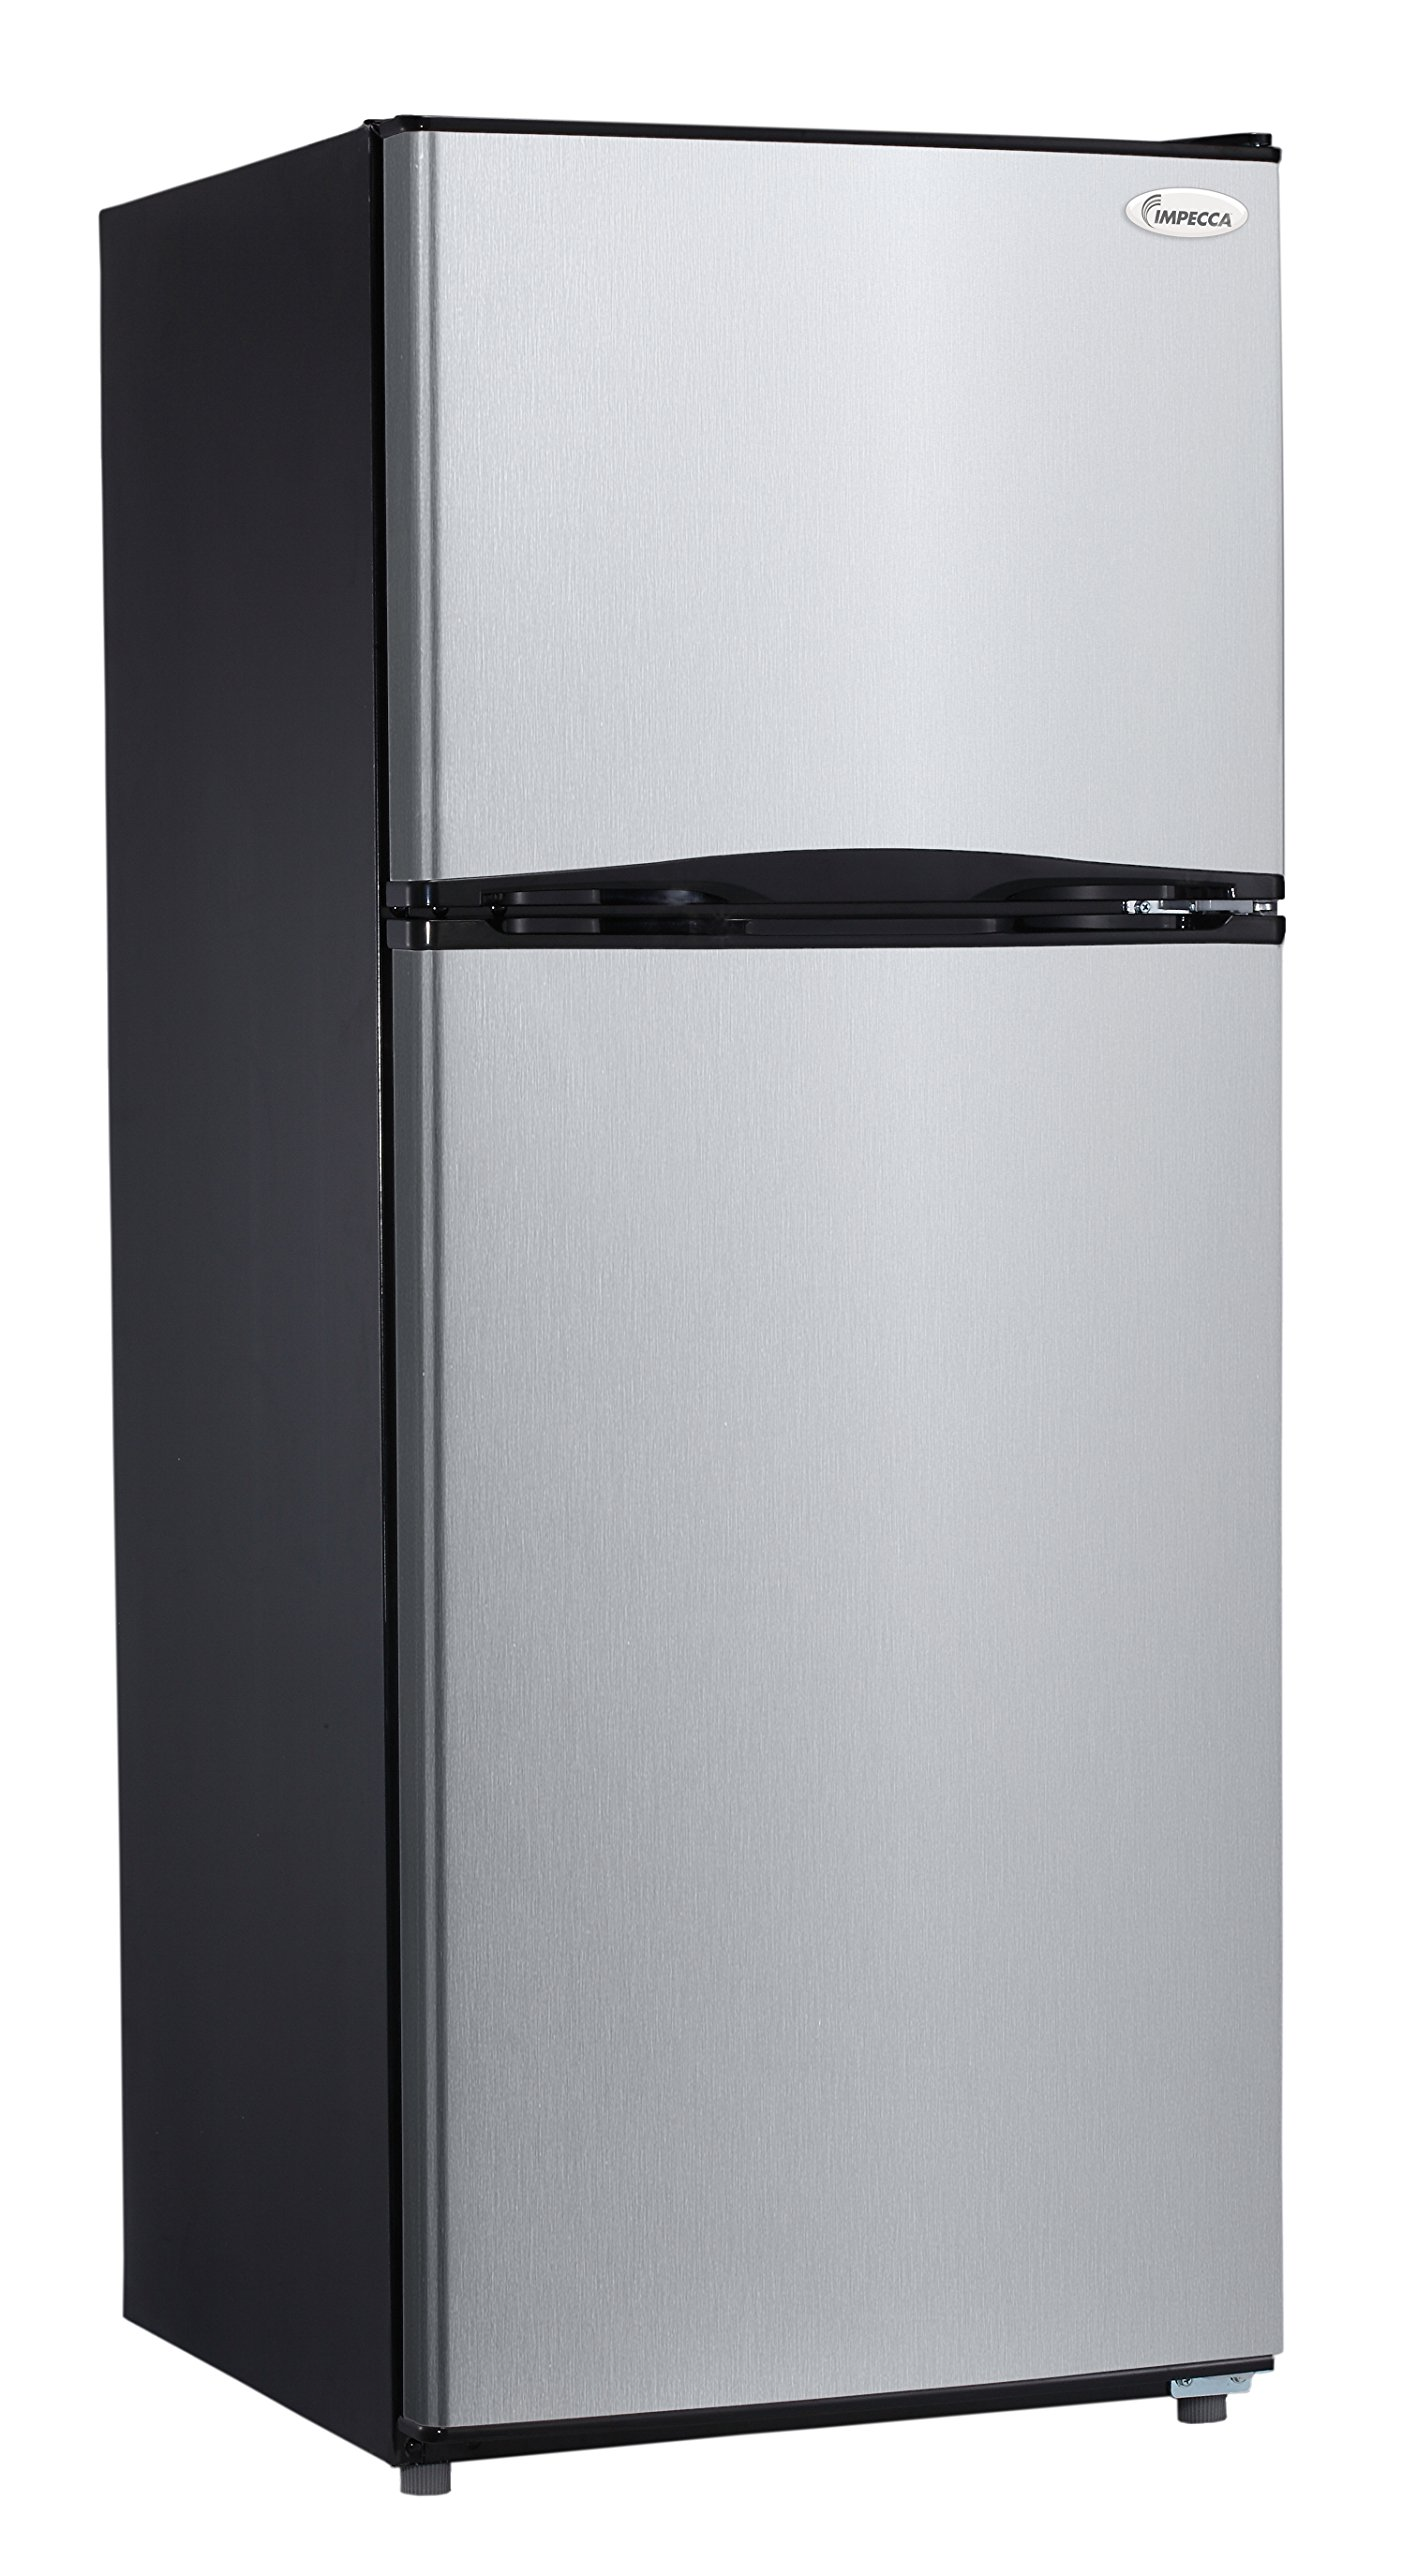 Impecca RA-2103ST Frost Free 9.9 cu.ft. Apartment Refrigerator with Top Mount Freezer, Stainless Steel